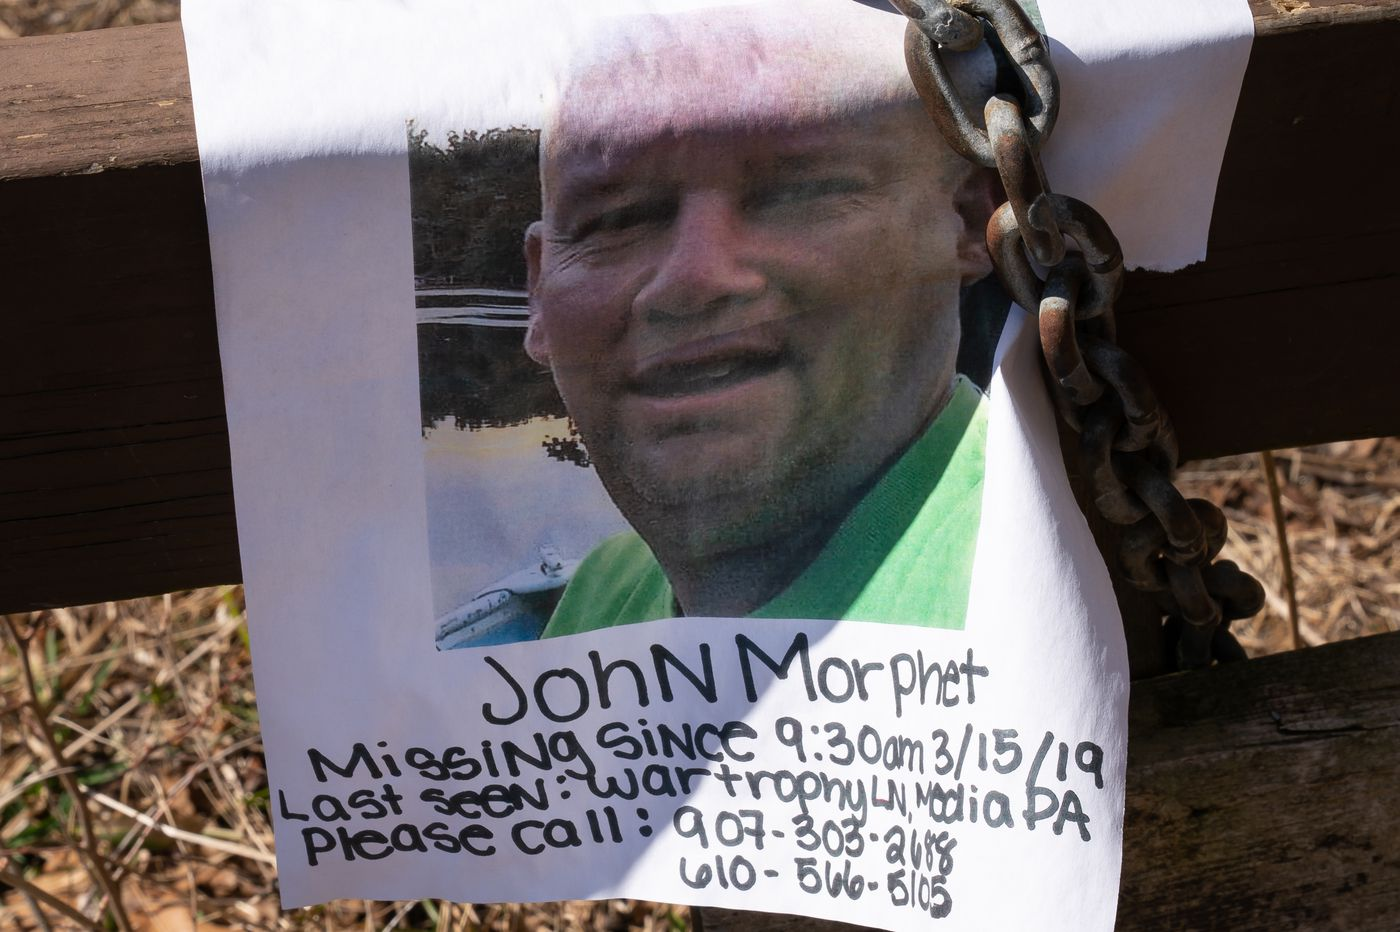 After a Delco drummer disappeared, old friends reunited to search for him   Mike Newall